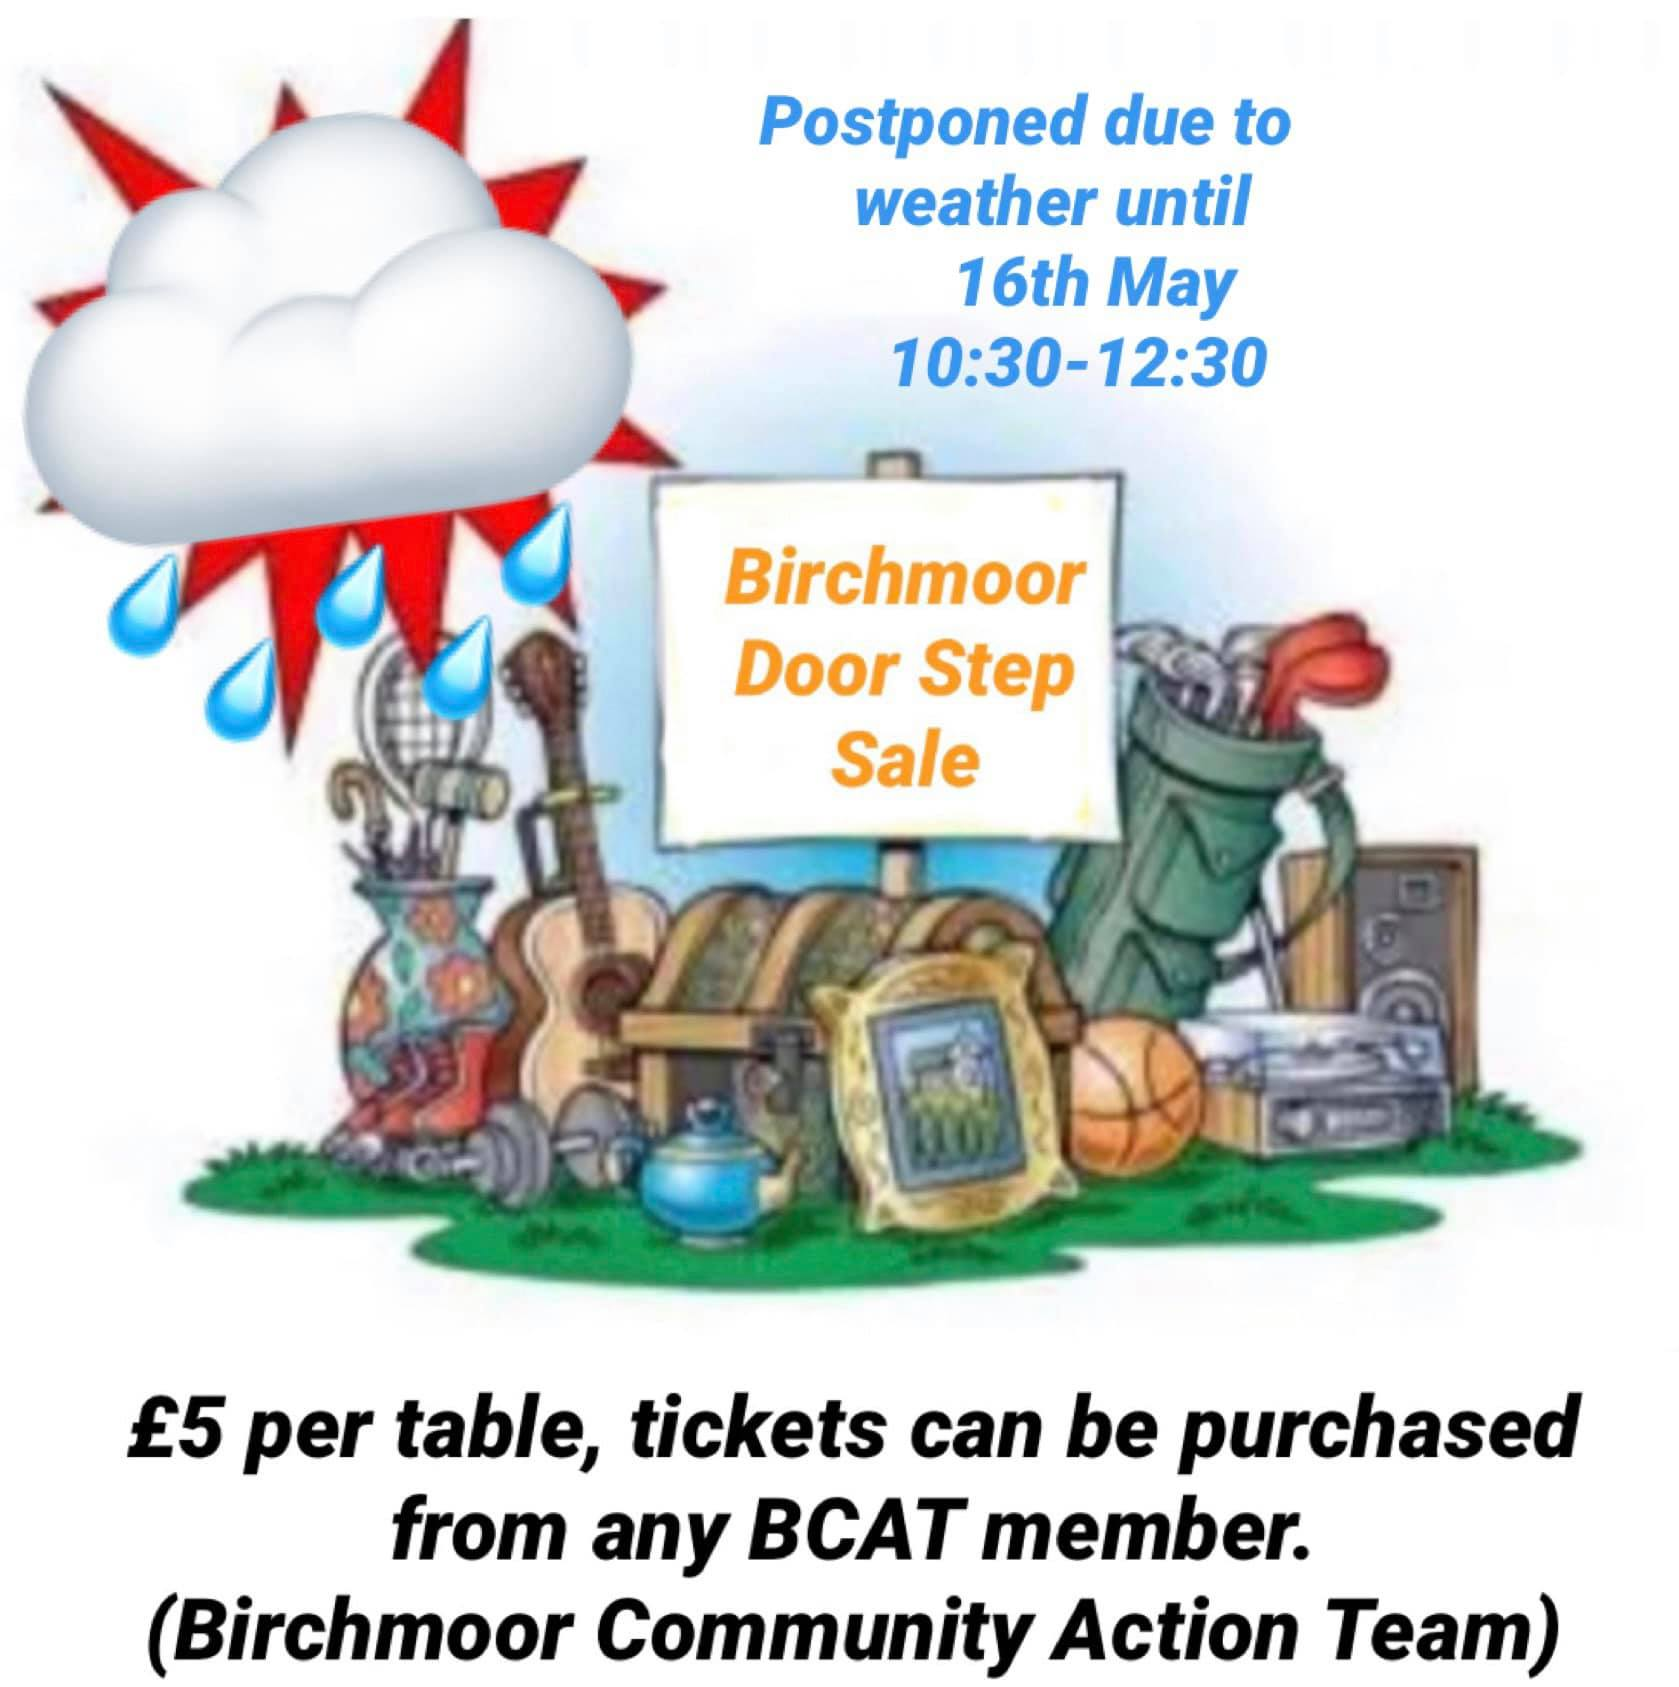 Birchmoor Door Step Sale